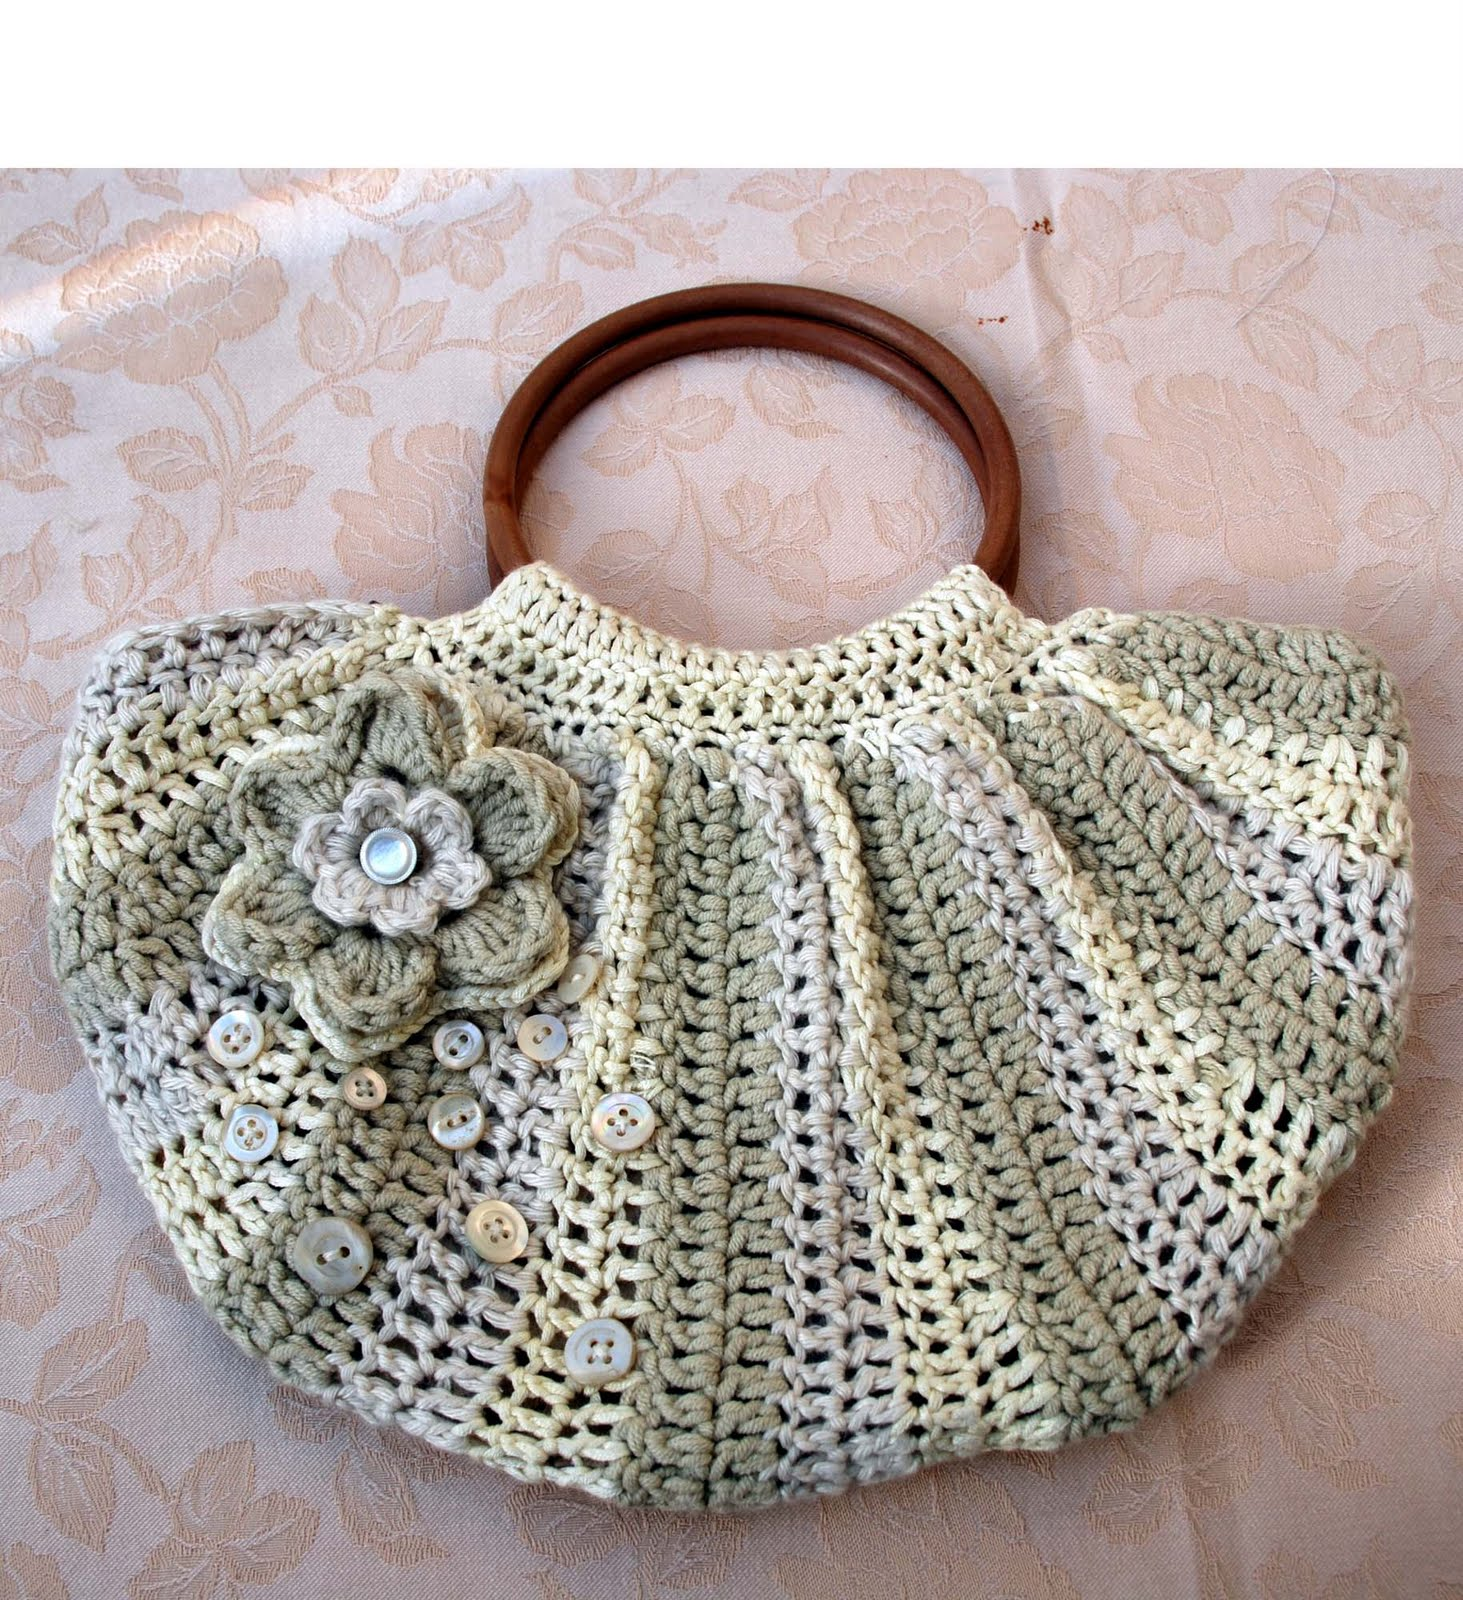 Crochet Purse Patterns Free : Knitting Patterns Free: crochet bag